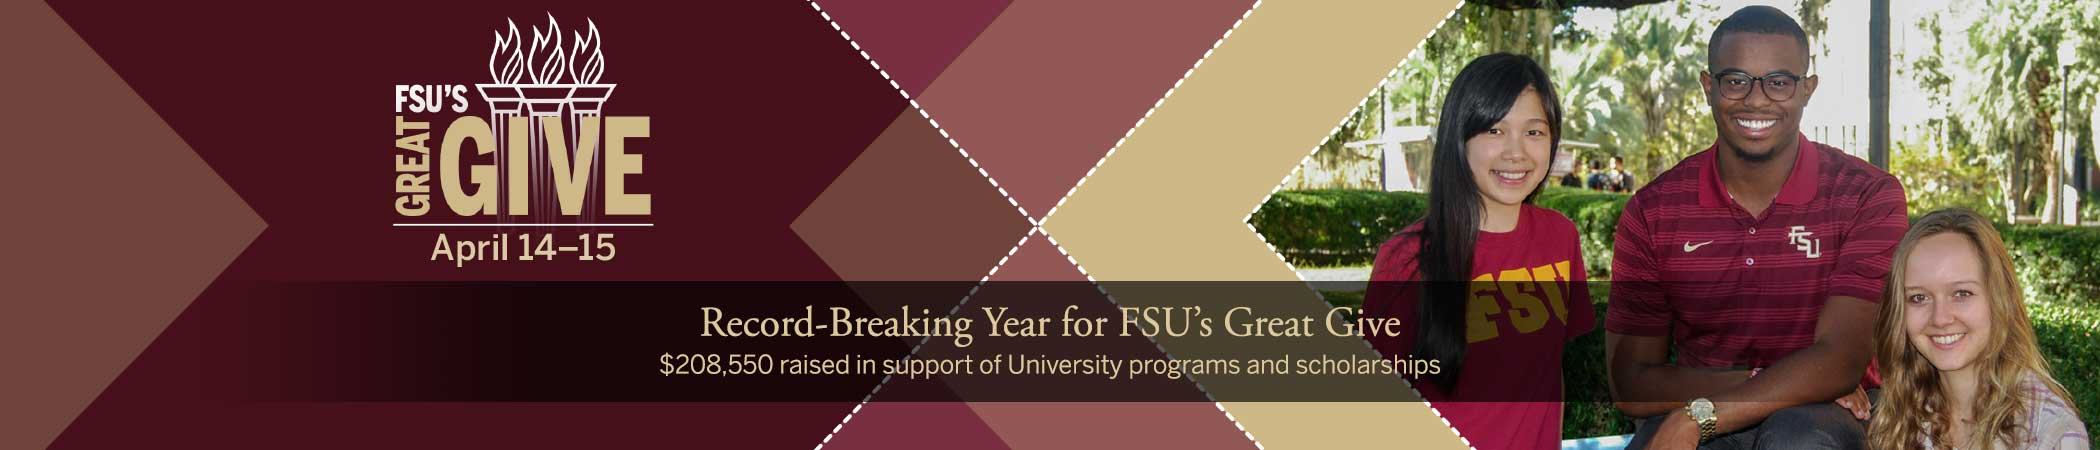 Record-Breaking Year for FSU's Great Give